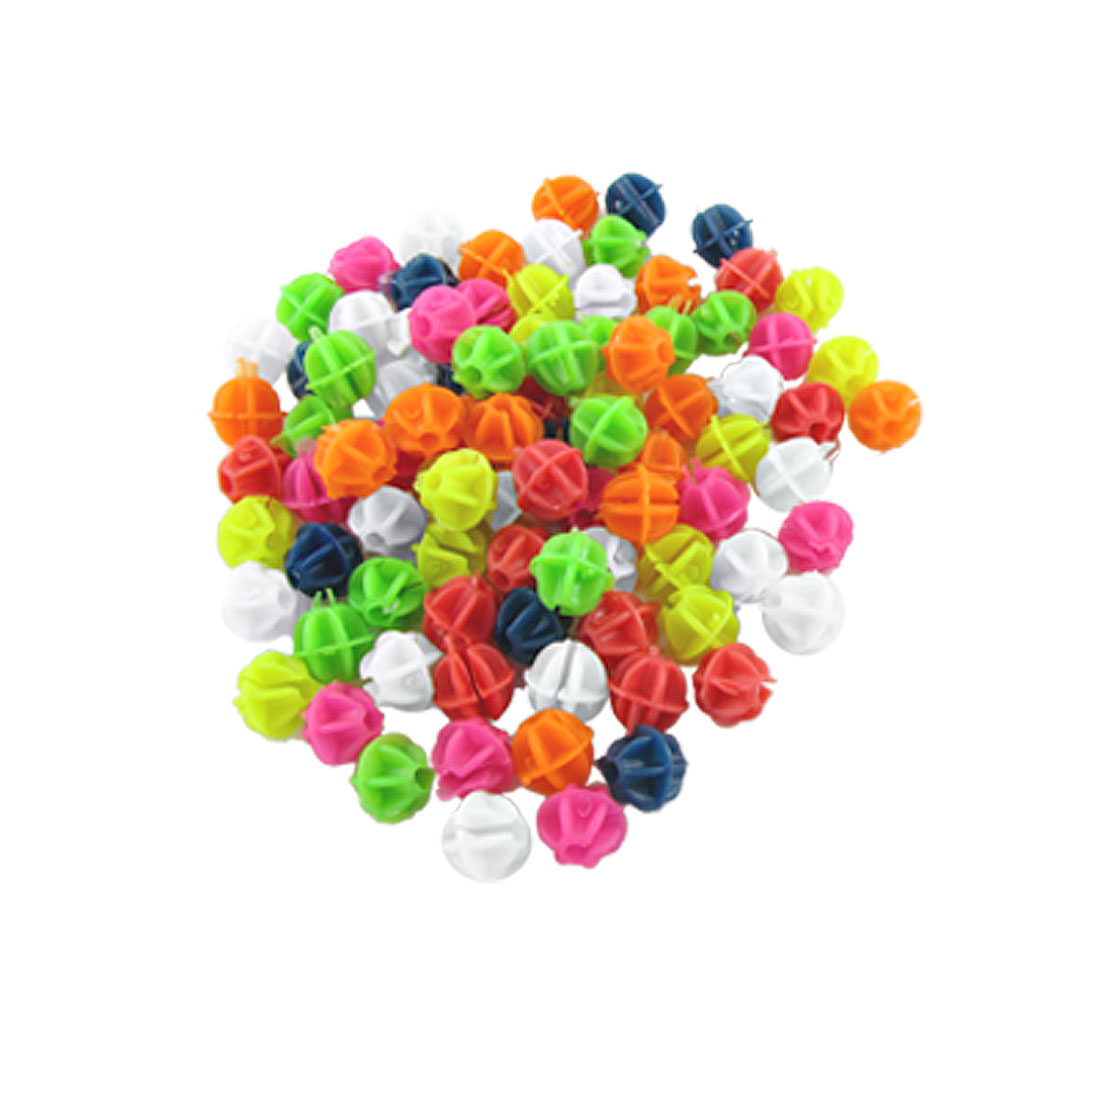 CHICTRY 2 Pack Colorful Bike Bicycle Wheel Spoke Beads Plastic Clip Luminous Spoke Beads Bicycle Beads Wire Beads Decorations with Storage Bag Kids Gift